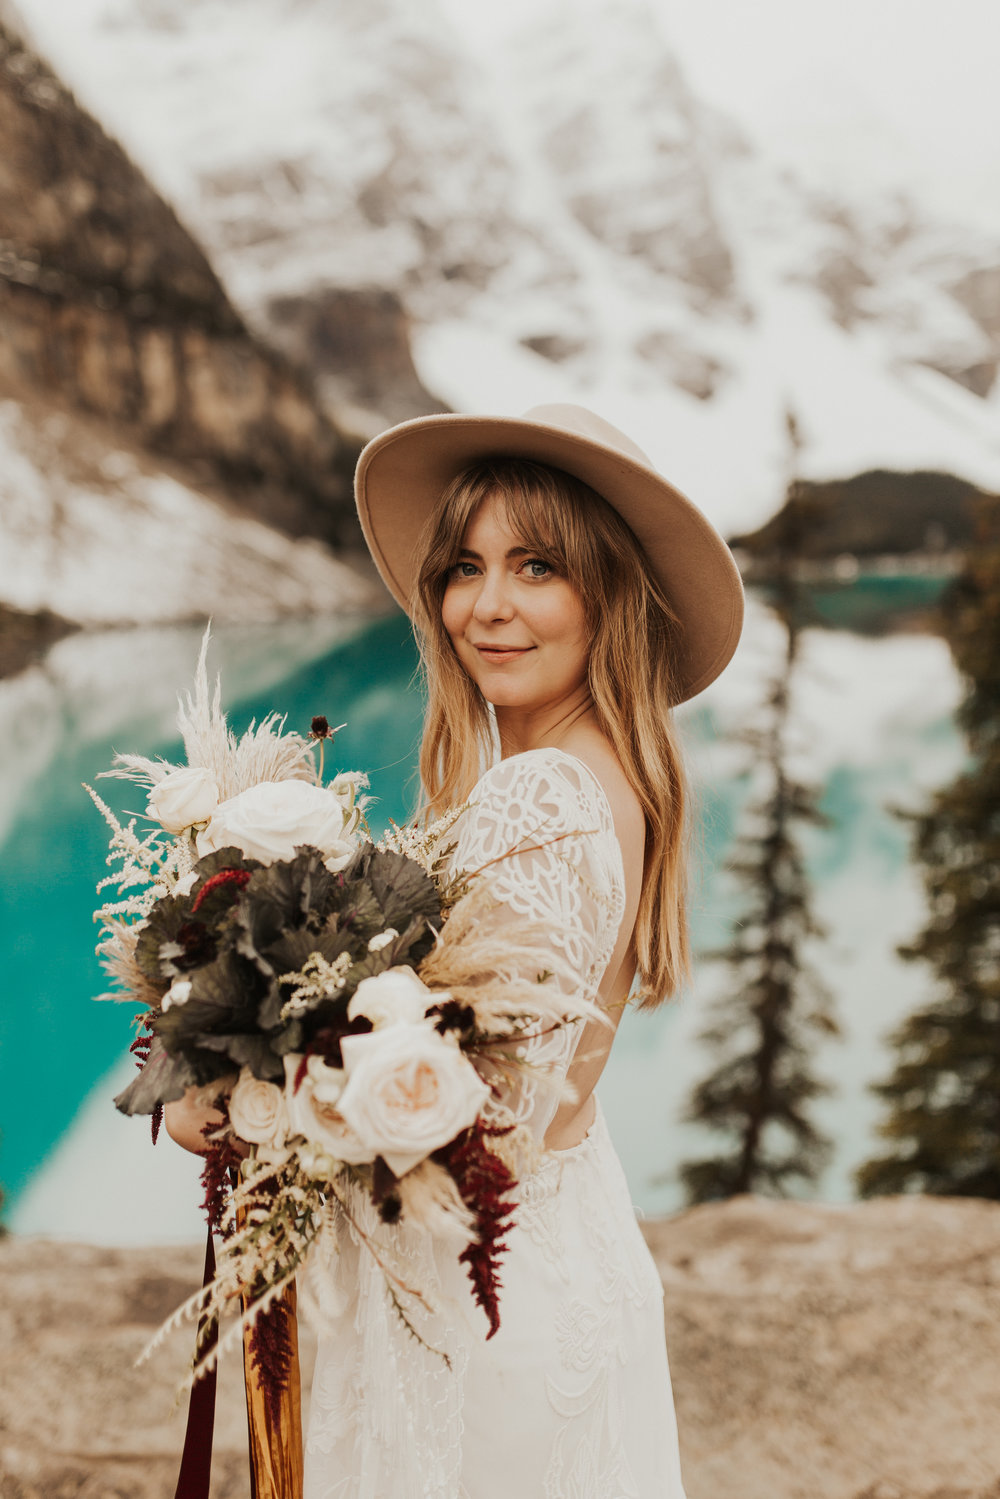 Banff Elopement l Lake Moraine Elopement l Vintage Bolo Tie l Pampas Grass Boho Boquet l Rue Design Wedding Dress l Banff Wedding Photographer l Destination Wedding Photographer l Katy Rose Photo_-26.jpg